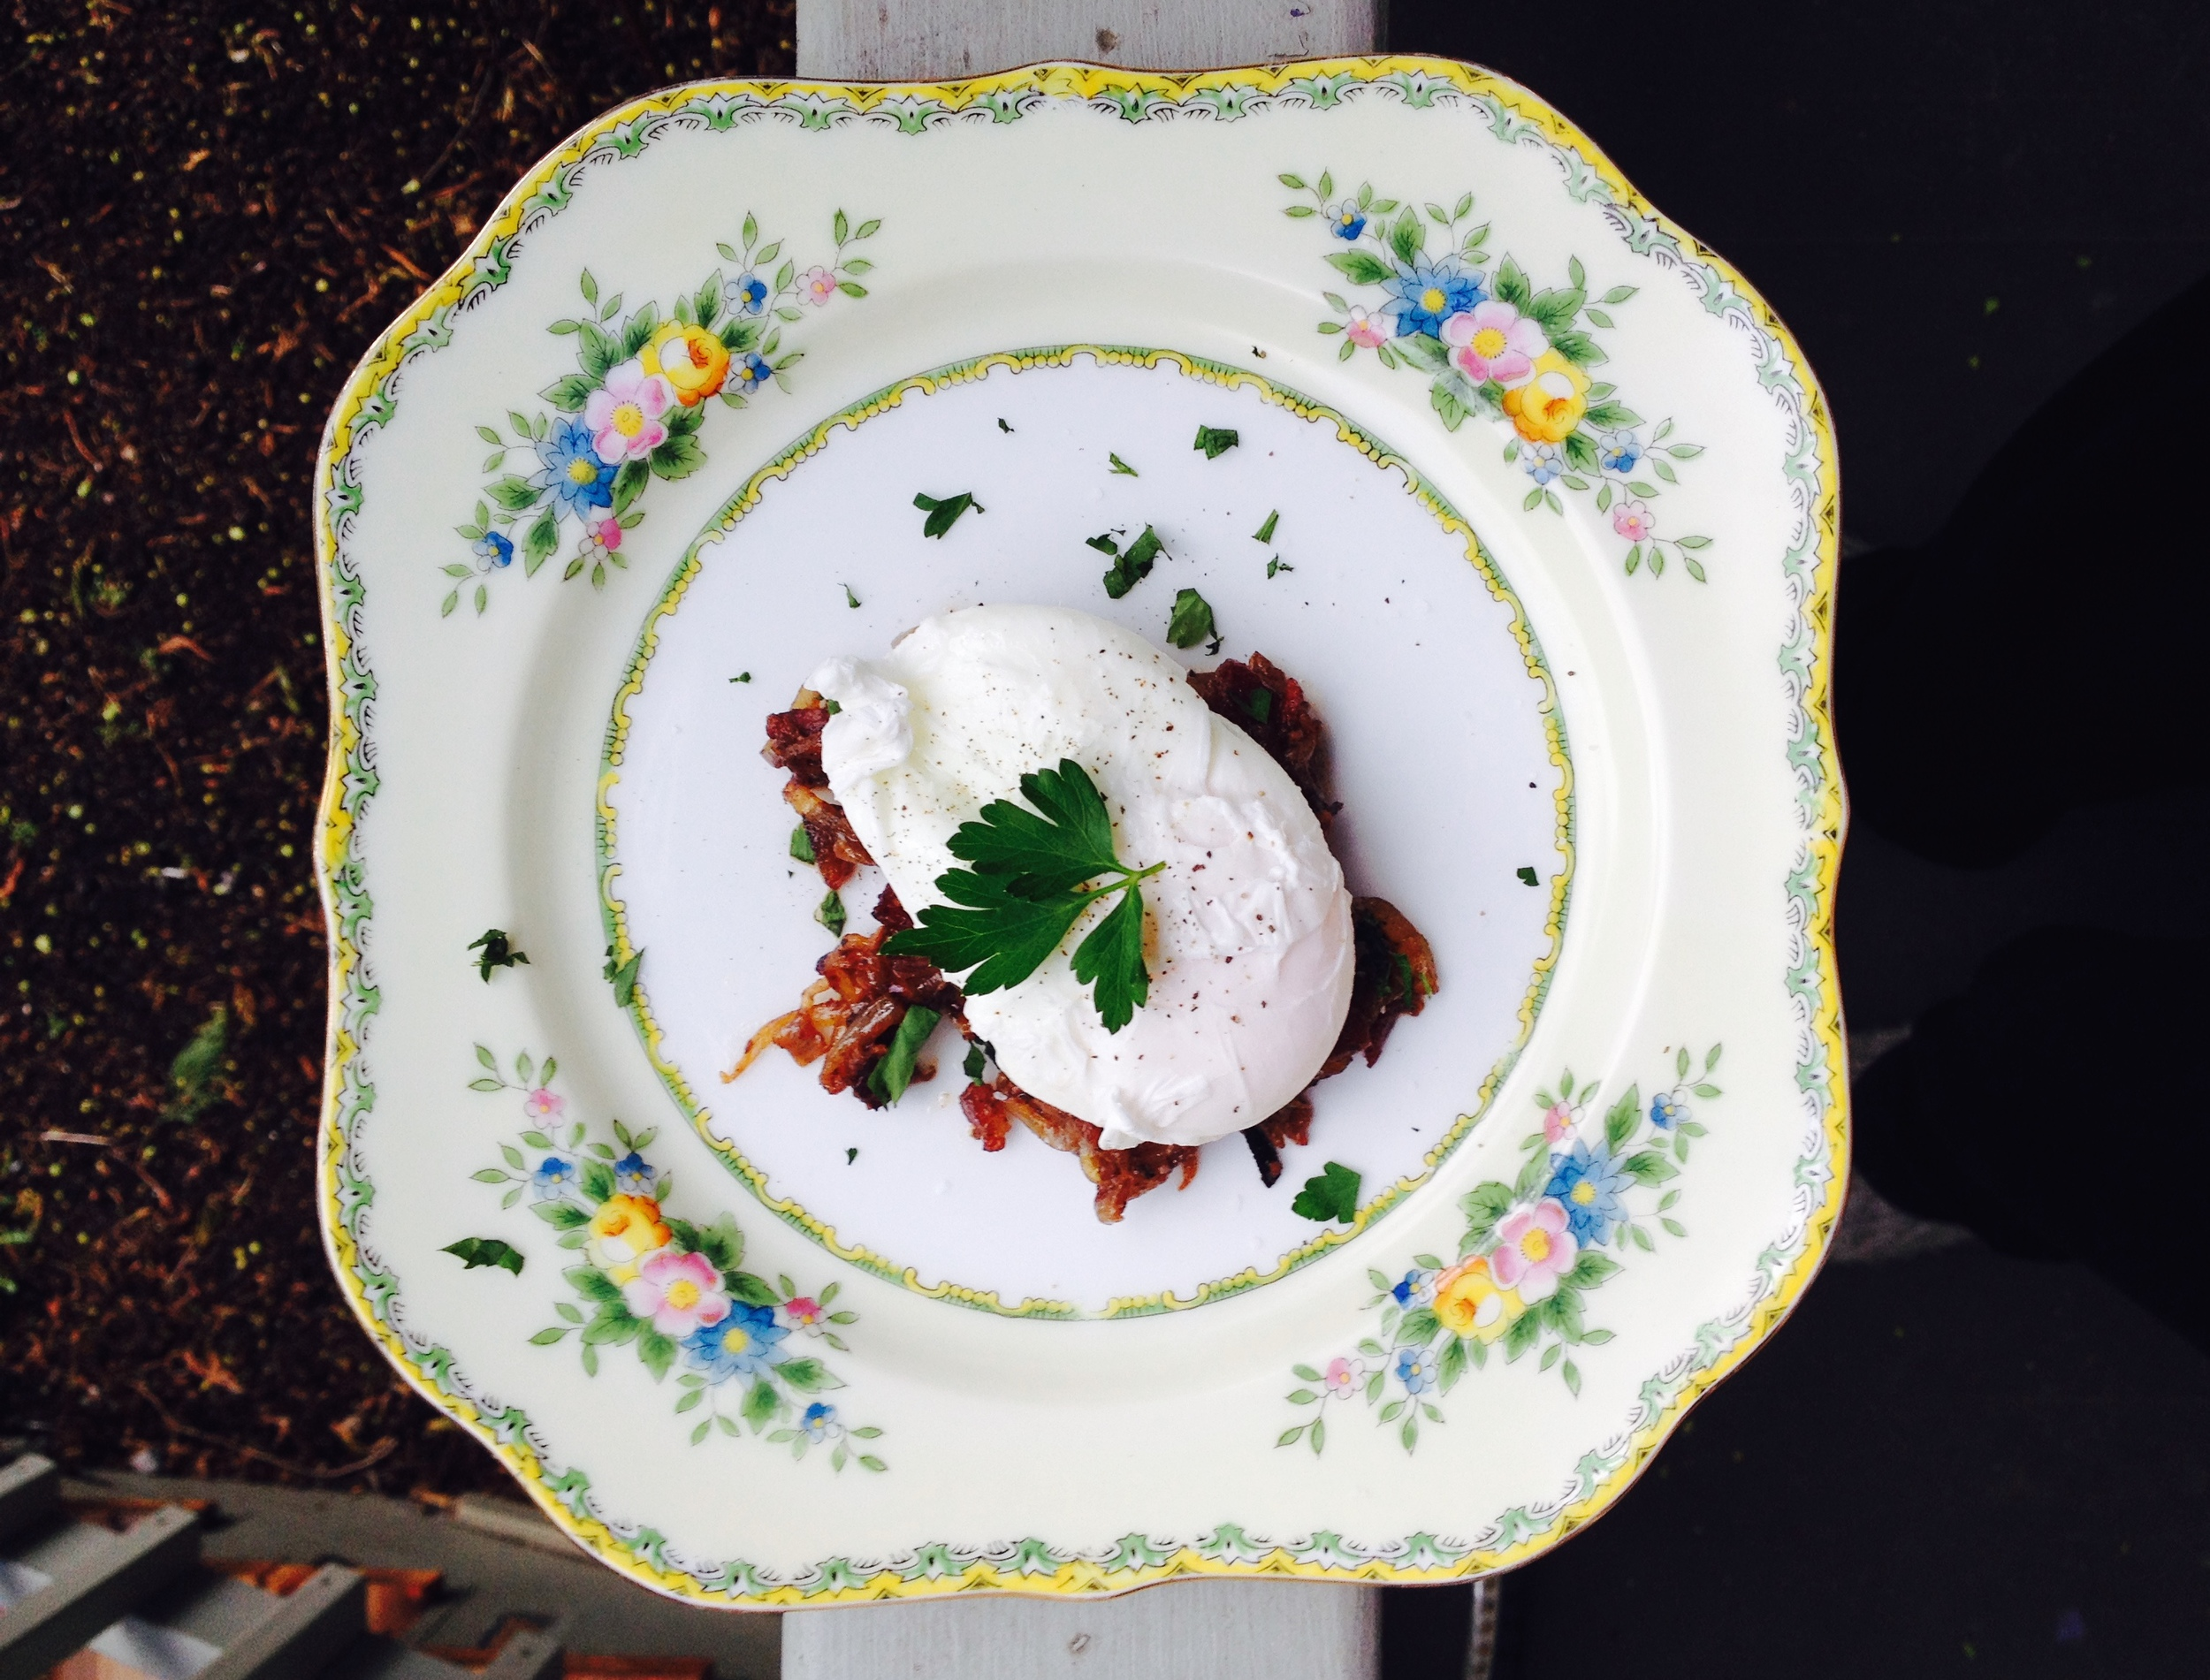 My (Orthodox) Great Grandmother's China topped with Chicken Liver and a Poached Egg... She might have swooned to see bacon on her plates.